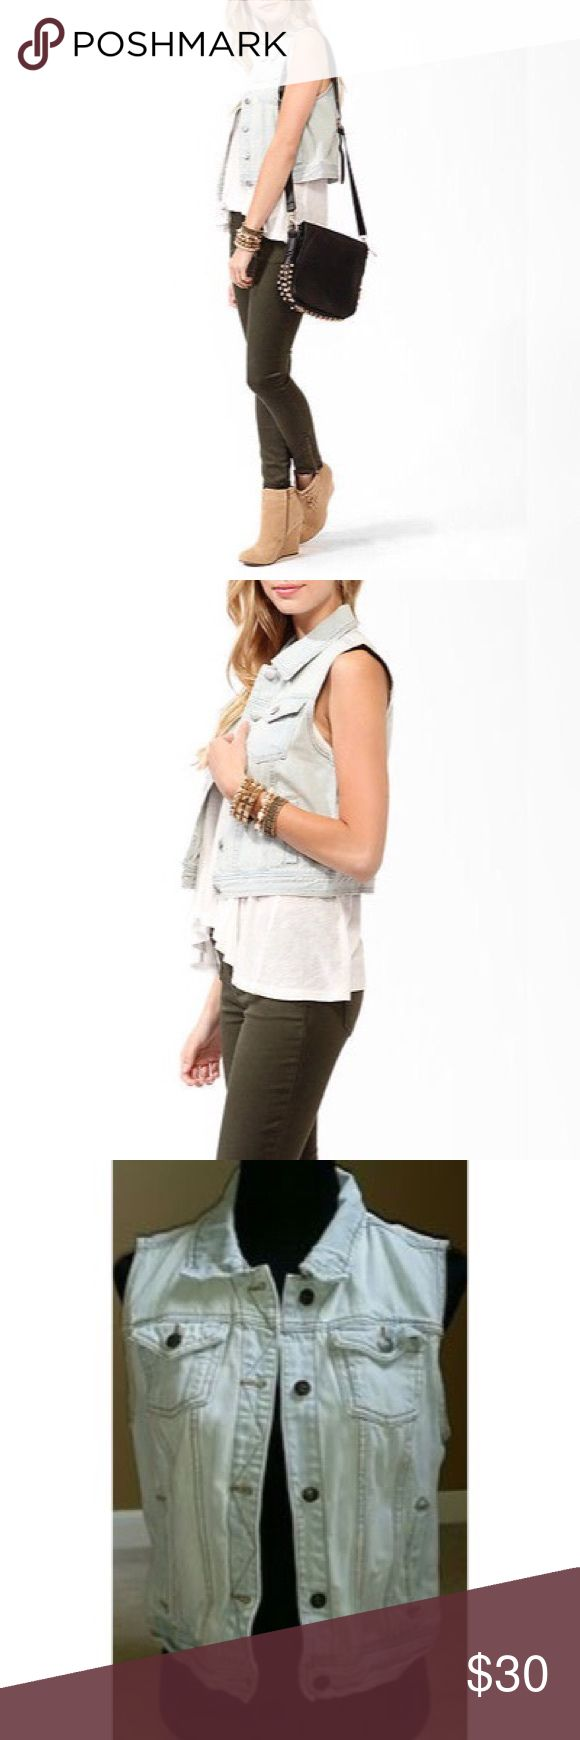 ✨HP✨F21 Light Wash Sleeveless Jean Jacket✨ ✨Best in Outerwear HP 1-27-18✨Slightly distressed light wash demin jean jacket. Sleeveless with 2 front pockets and buttons down the front. Features floral trim detail inside around sleeves and pockets. No stains or snags or signs of wear.✨ Forever 21 Jackets & Coats Jean Jackets